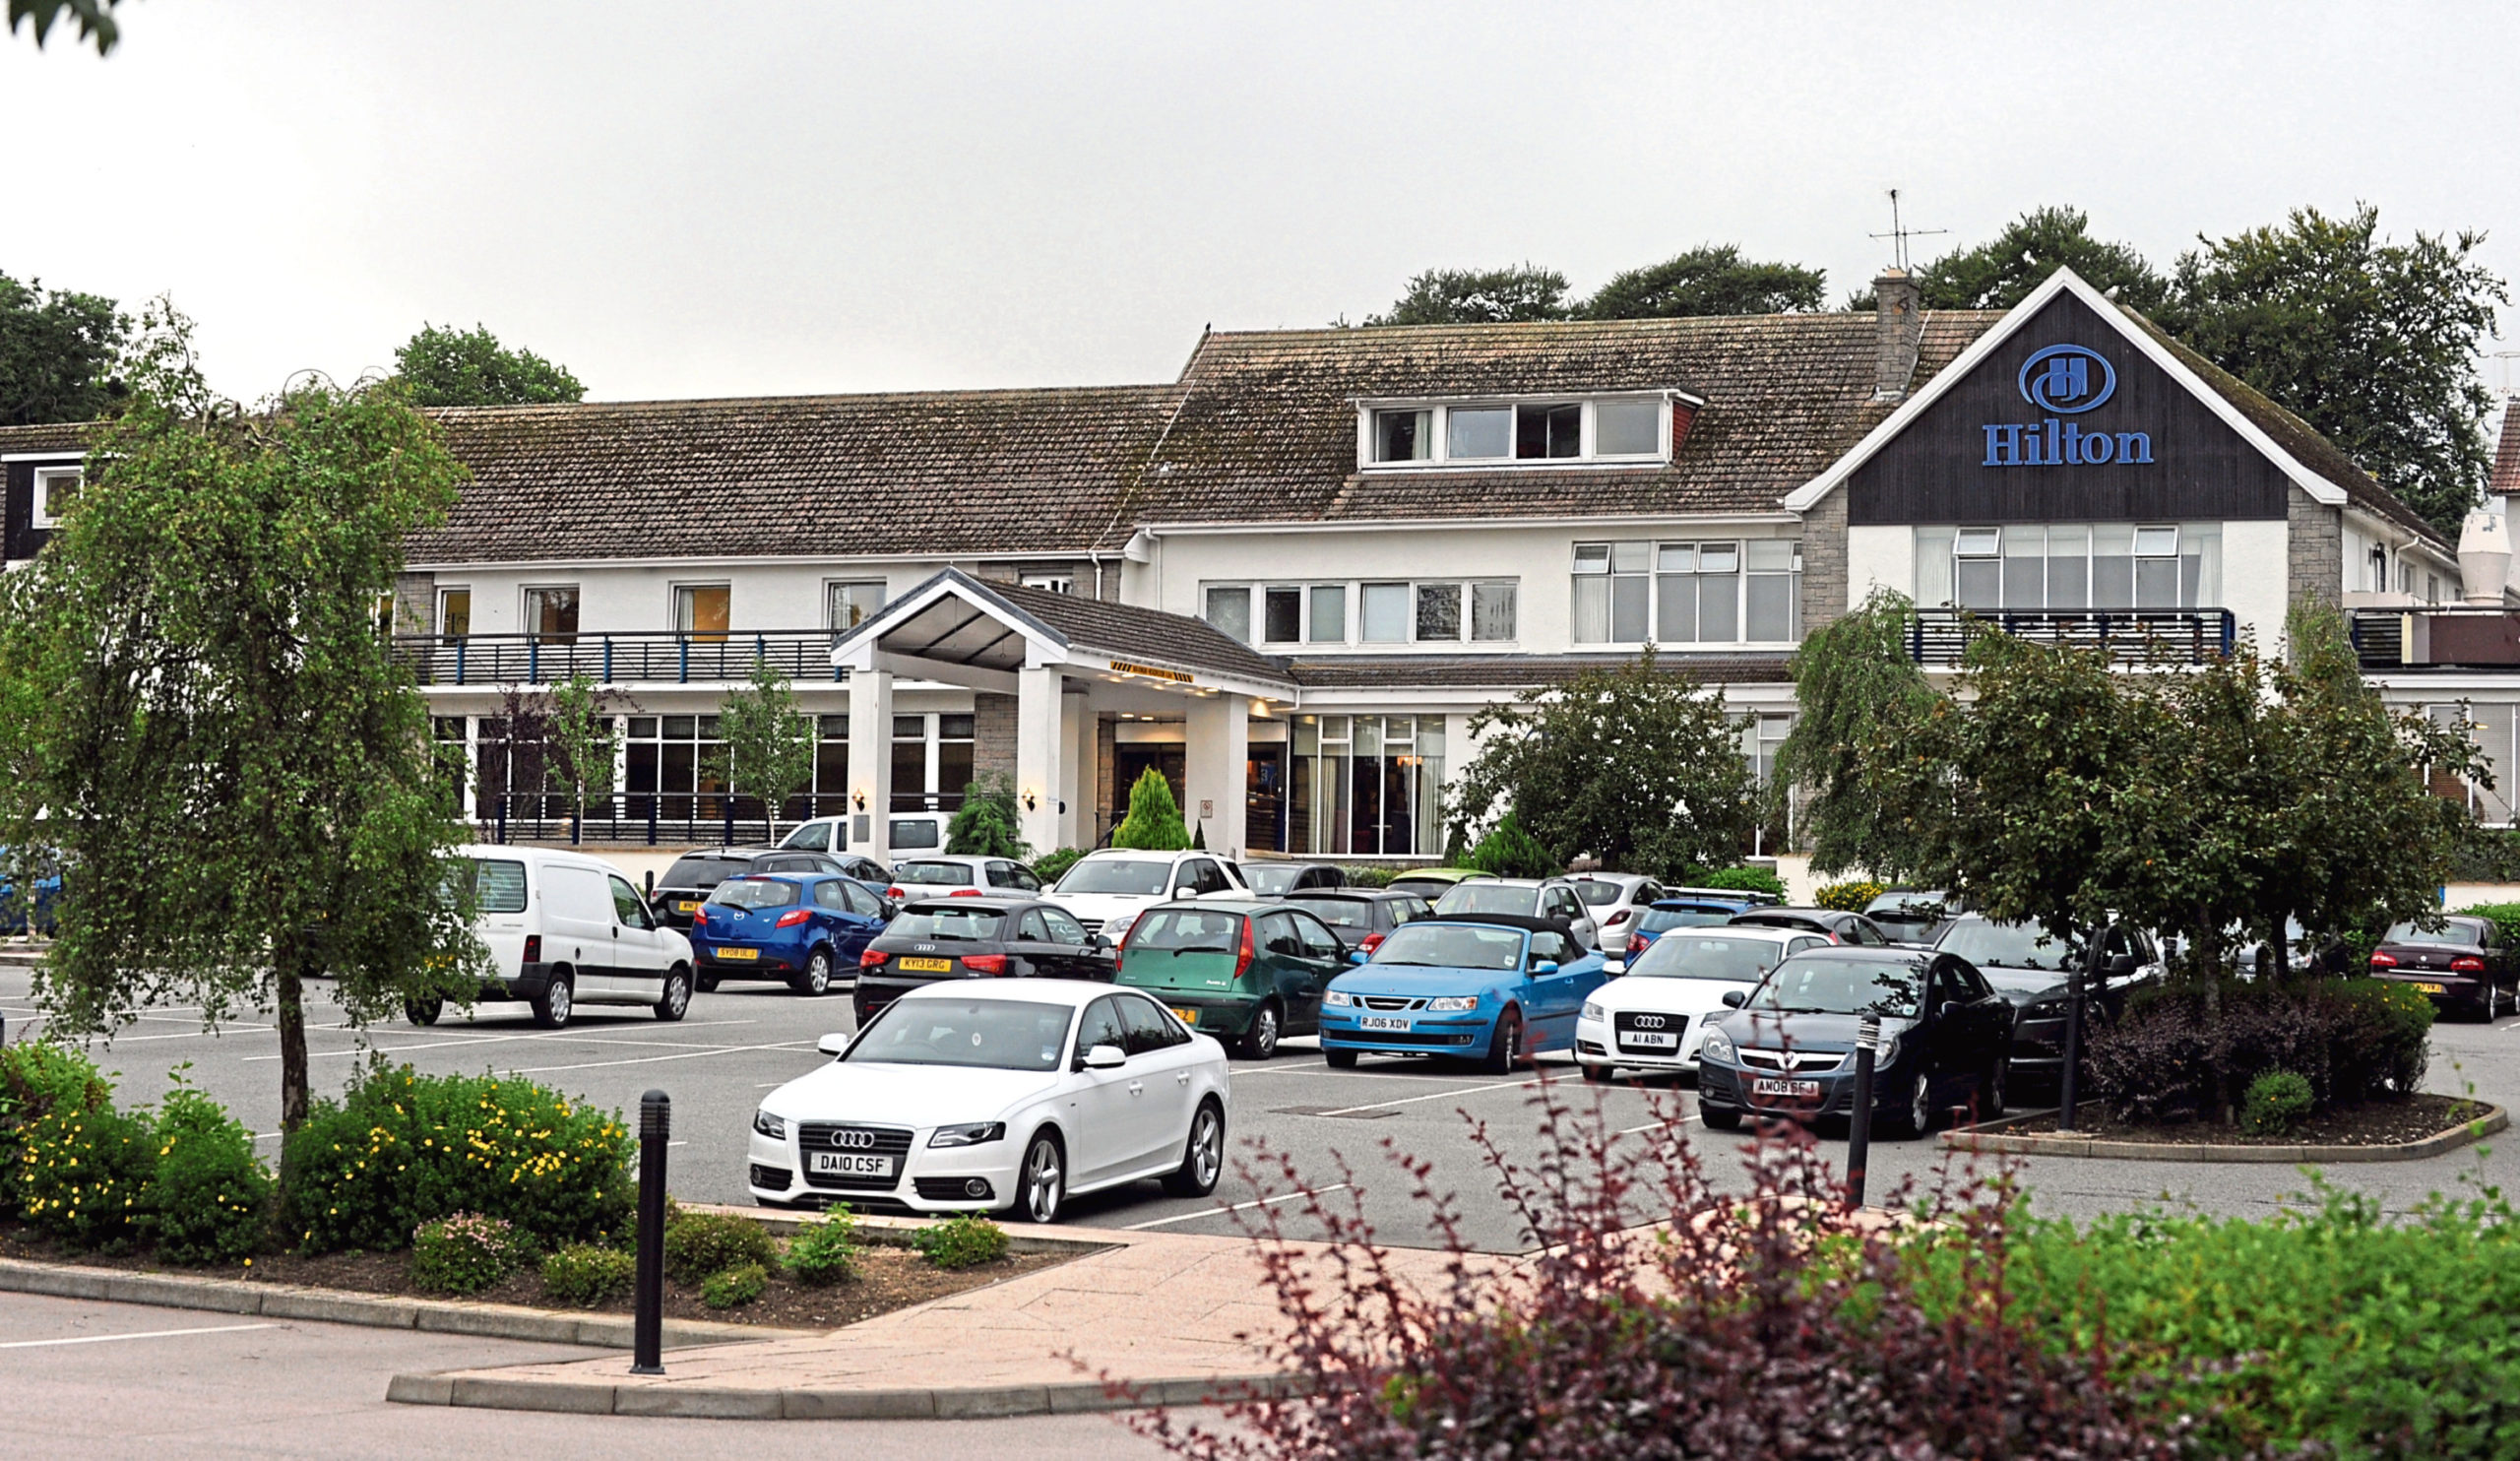 Police received reports of young people gathering at the former Treetops Hotel.